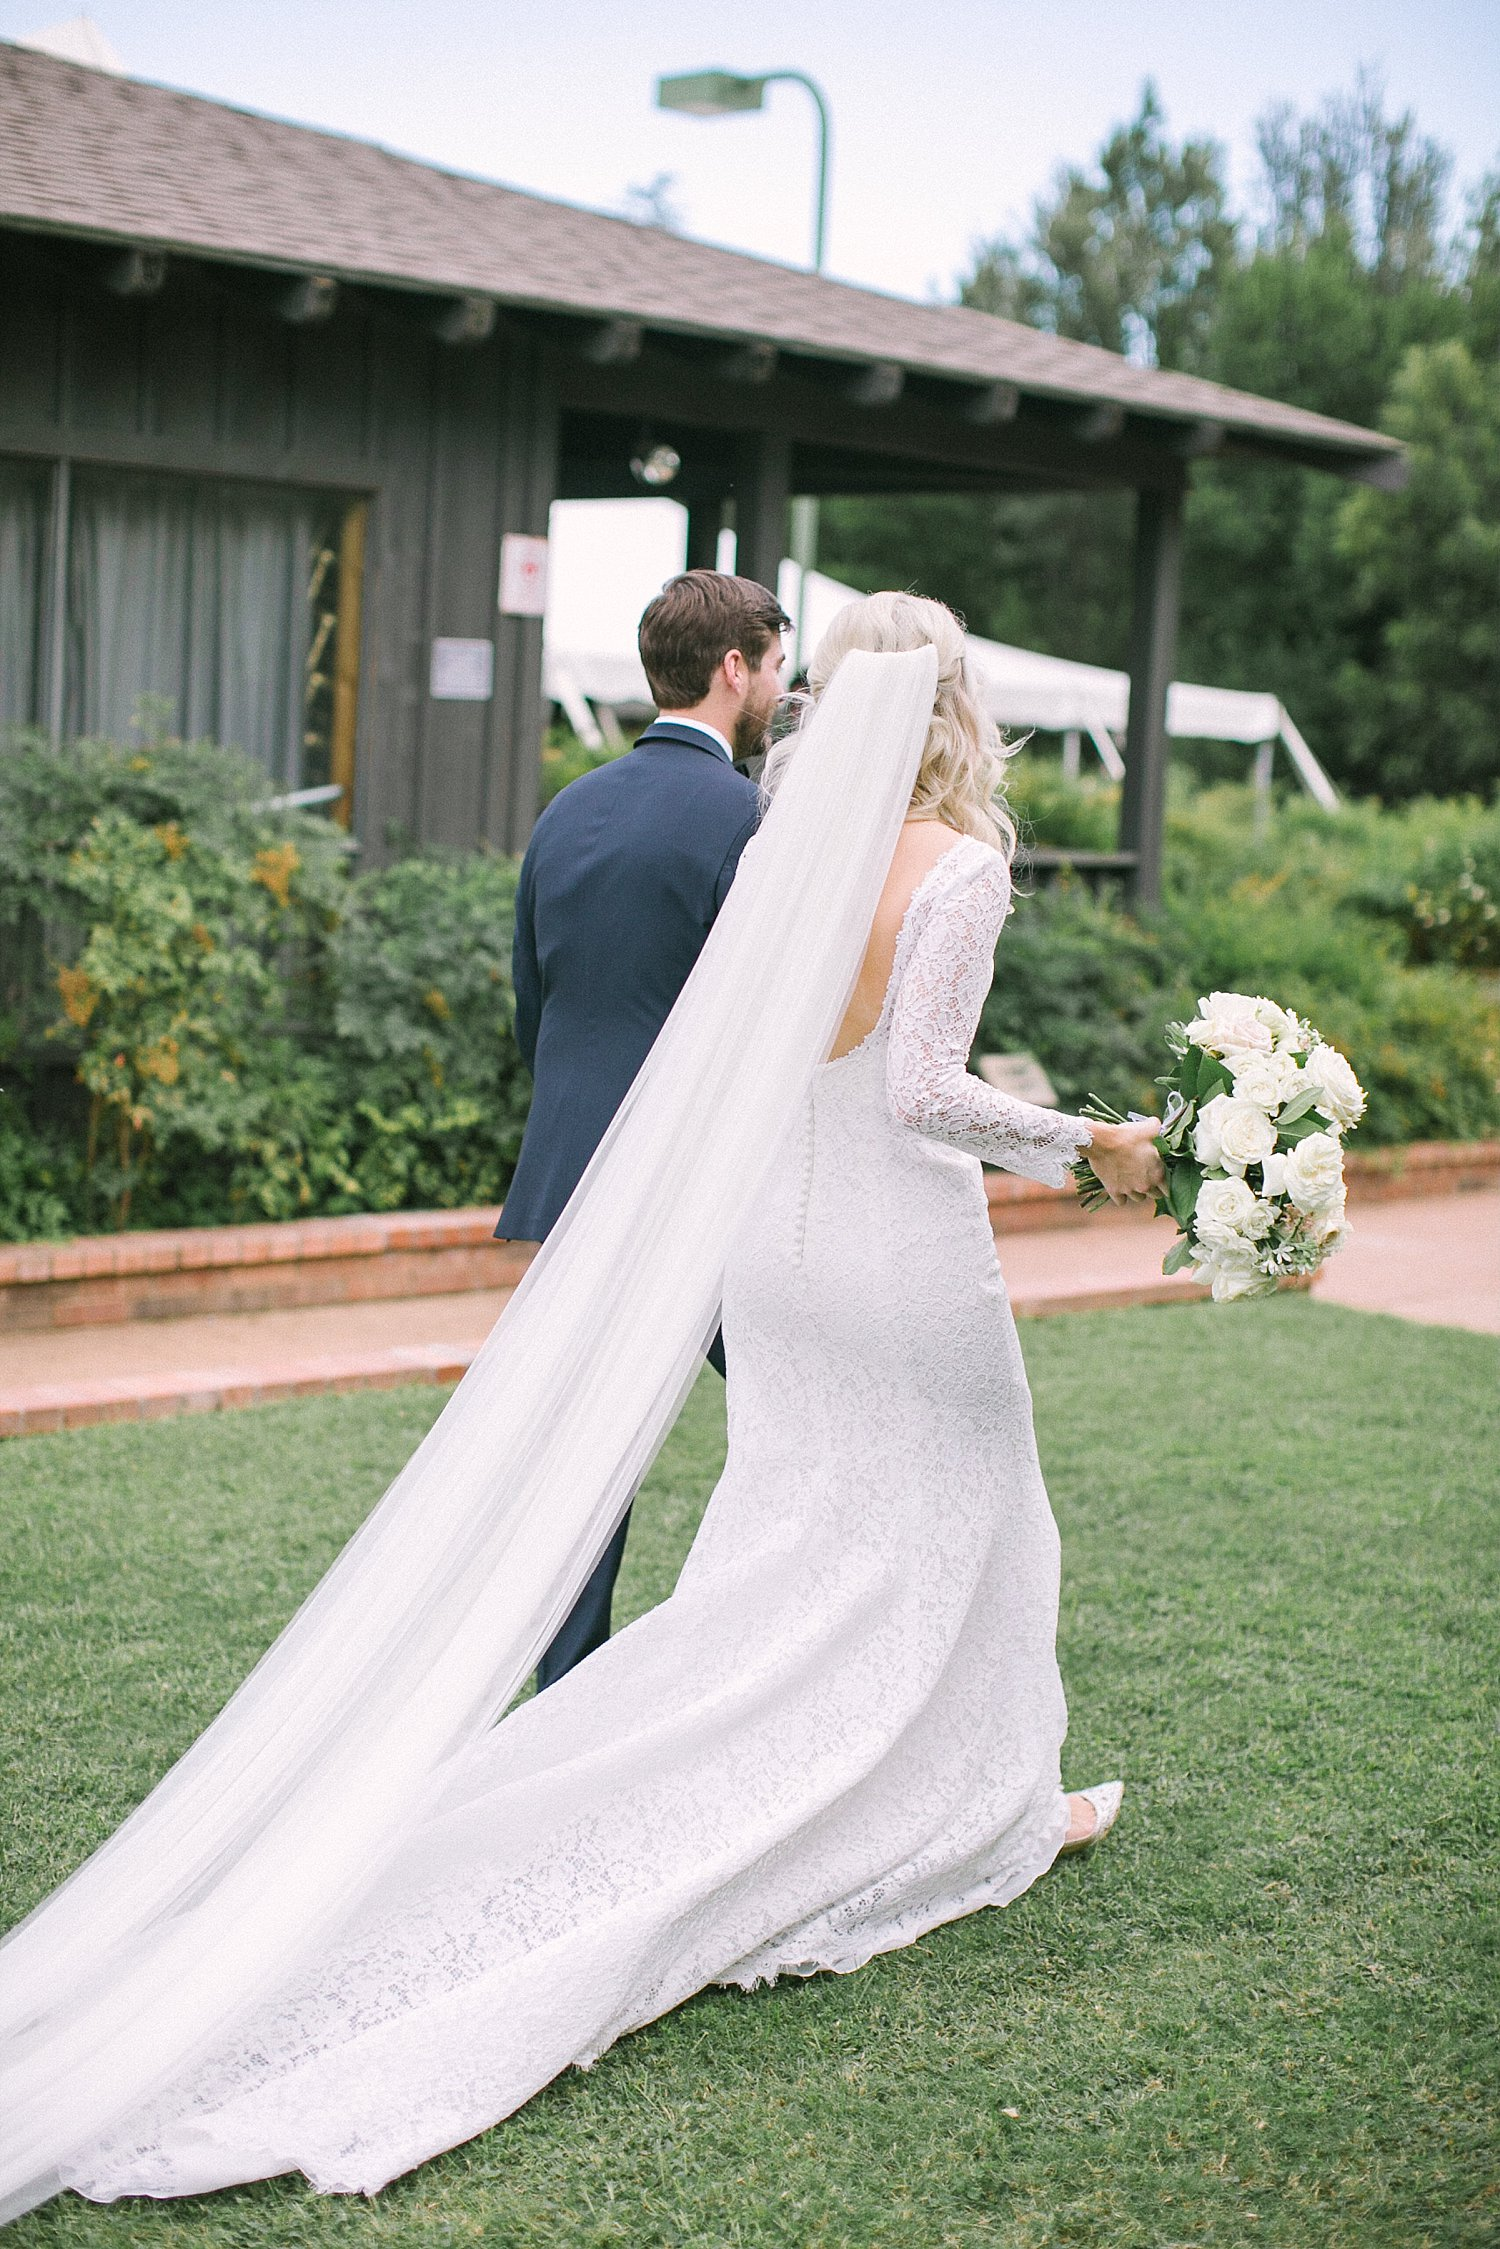 Bride and groom walking away at a outdoor wedding